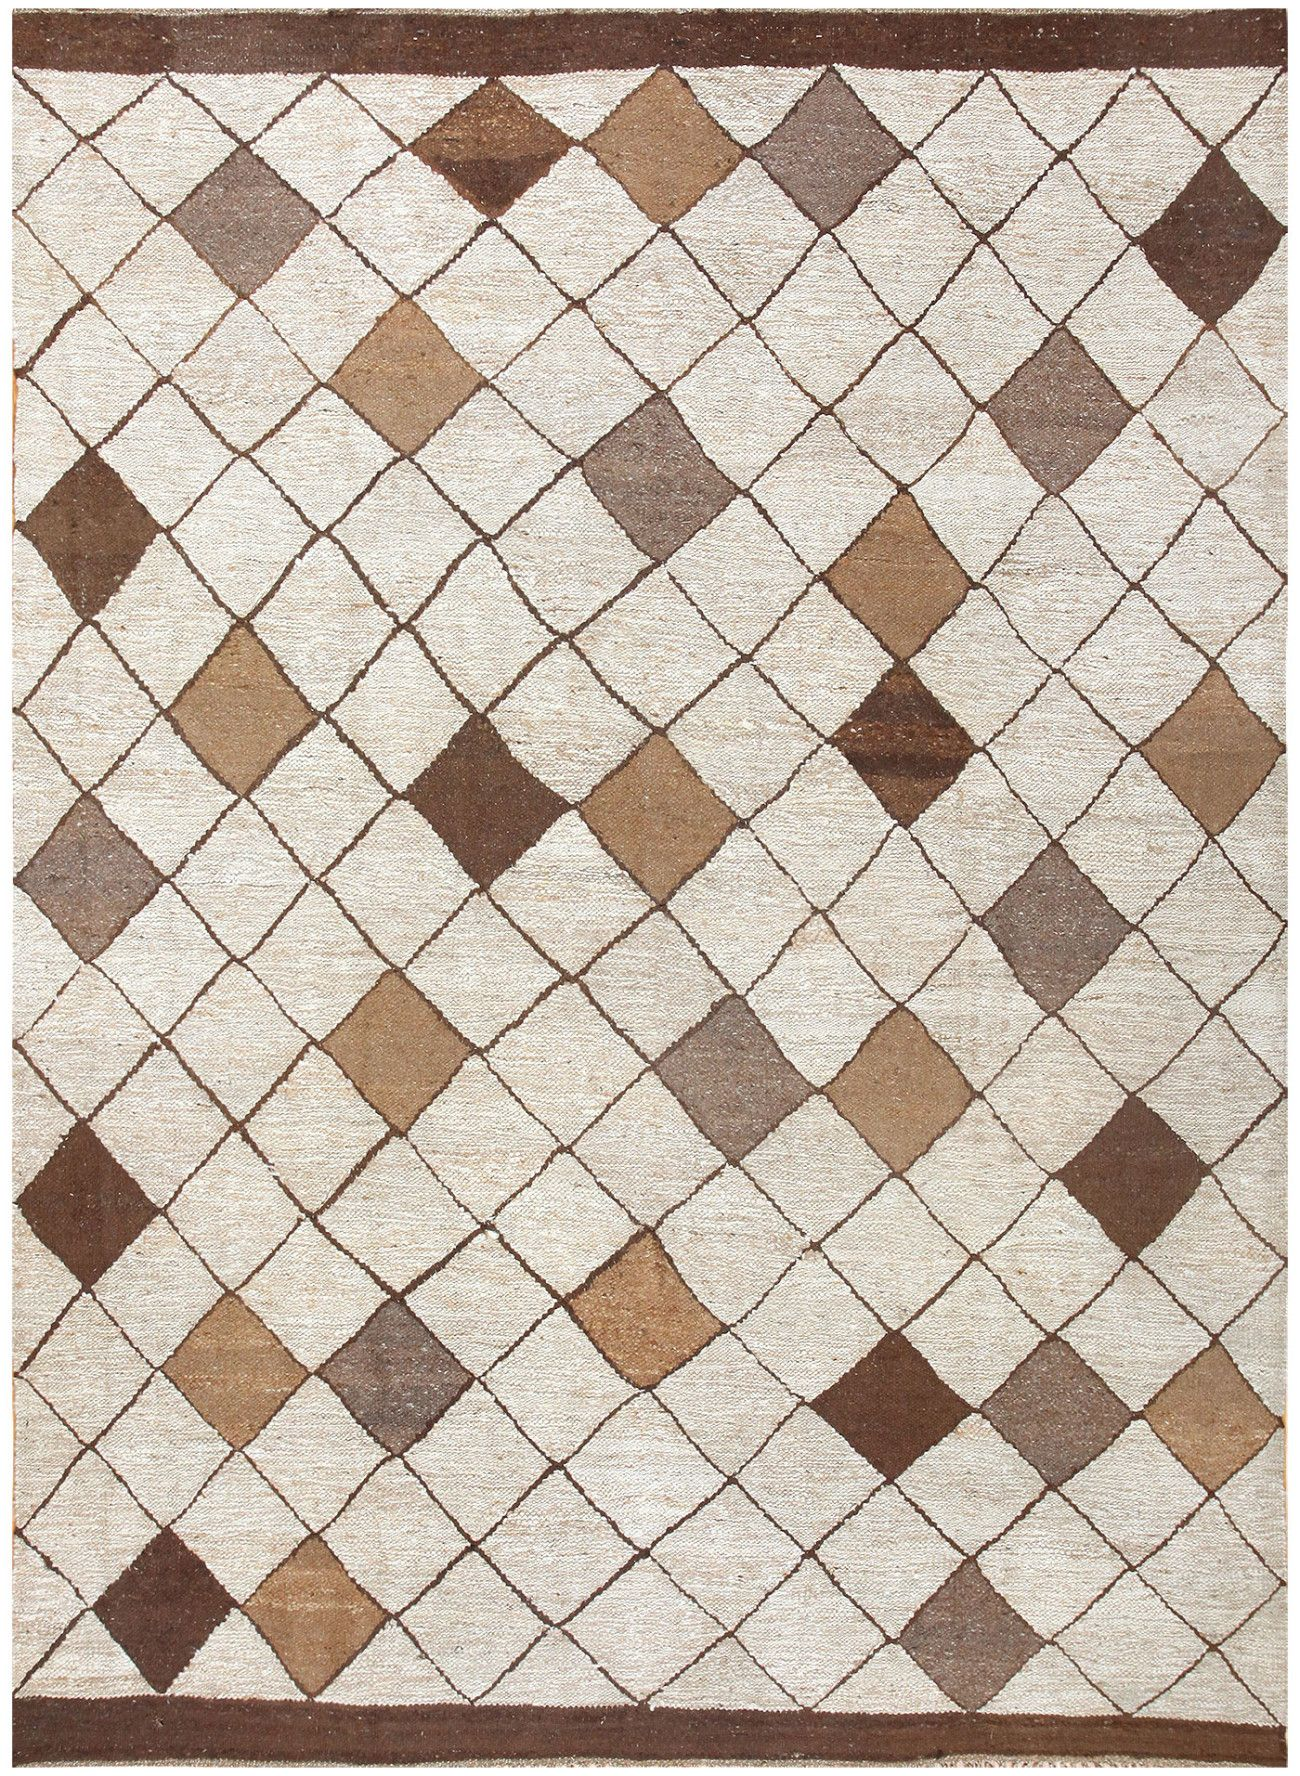 Vintage Kilim, Sweden, mid 20th Century | Boasting the strict geometry and creative simplicity of traditional Swedish tapestries, this elegantly understated piece begins with a broad cocoa-colored border framing an austere lattice across a textured cream base. This strict diamond pattern dominates the piece